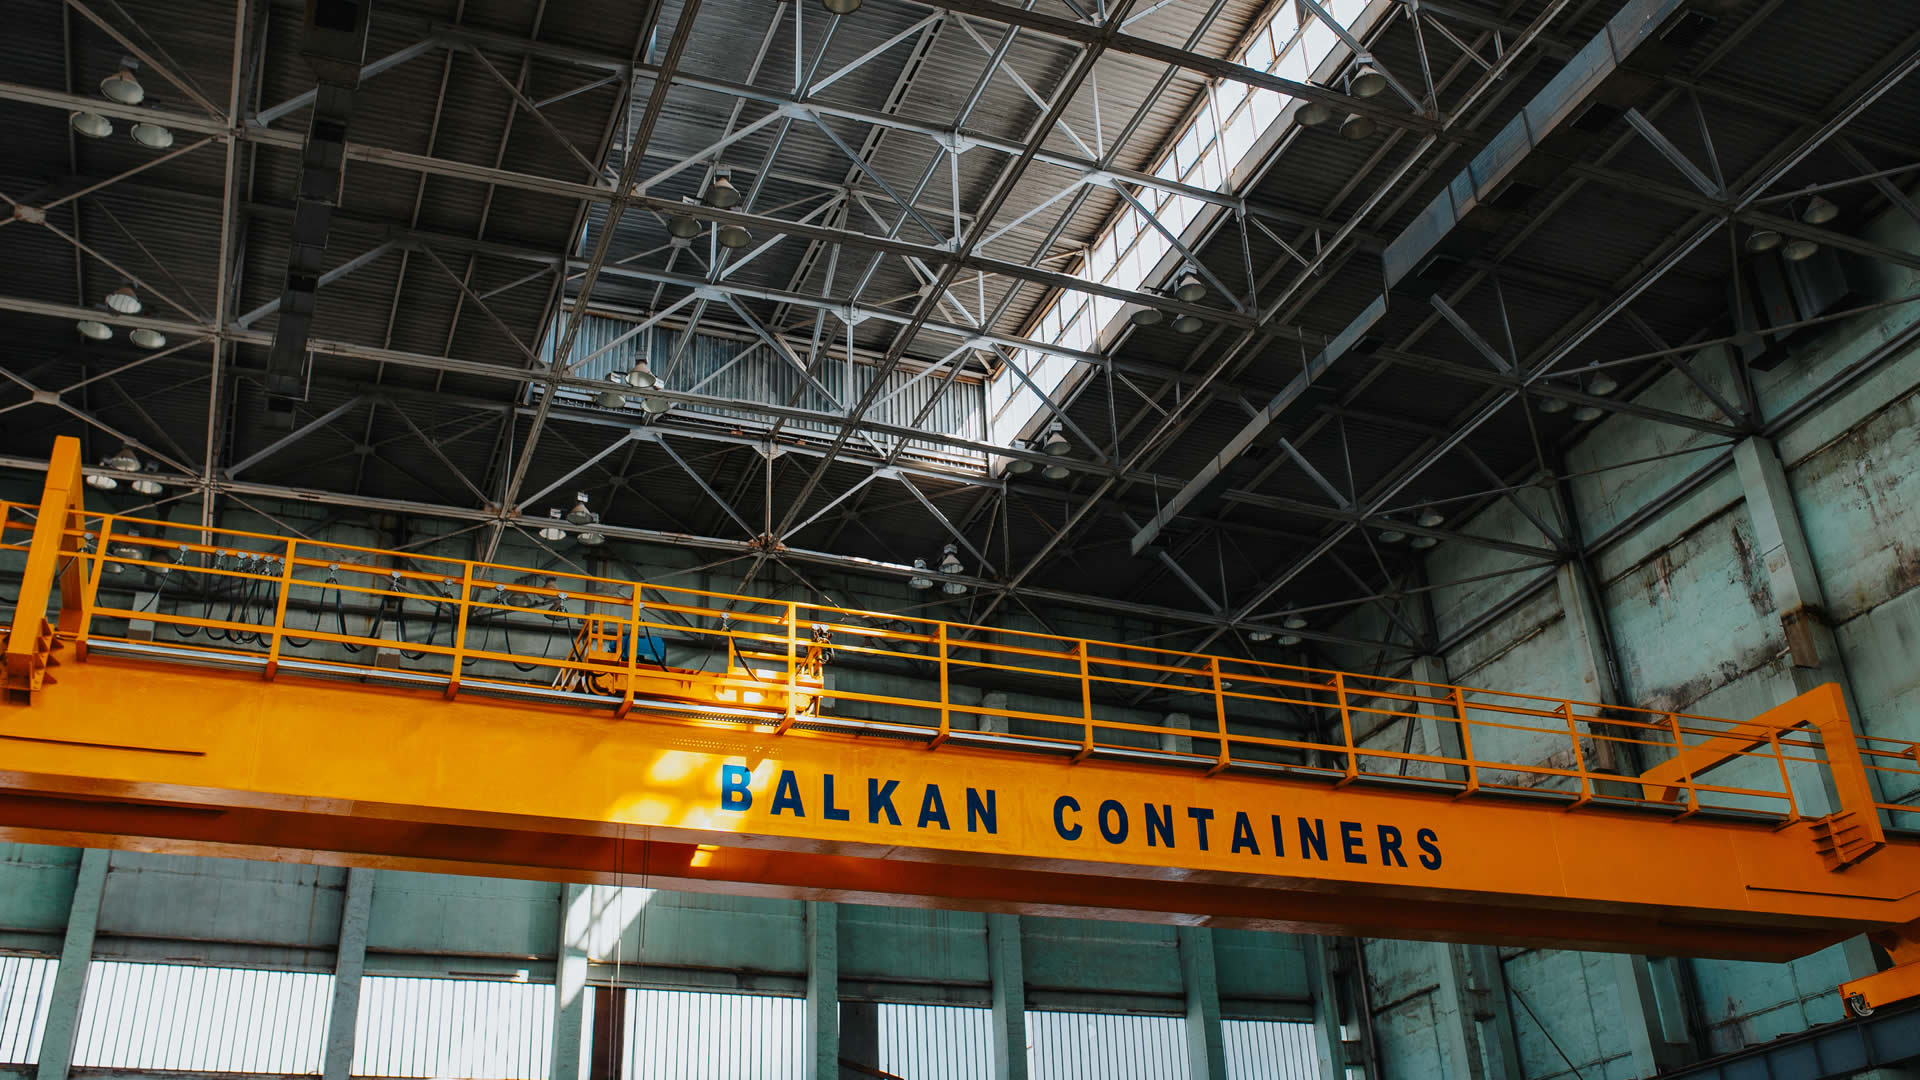 balkancontainers